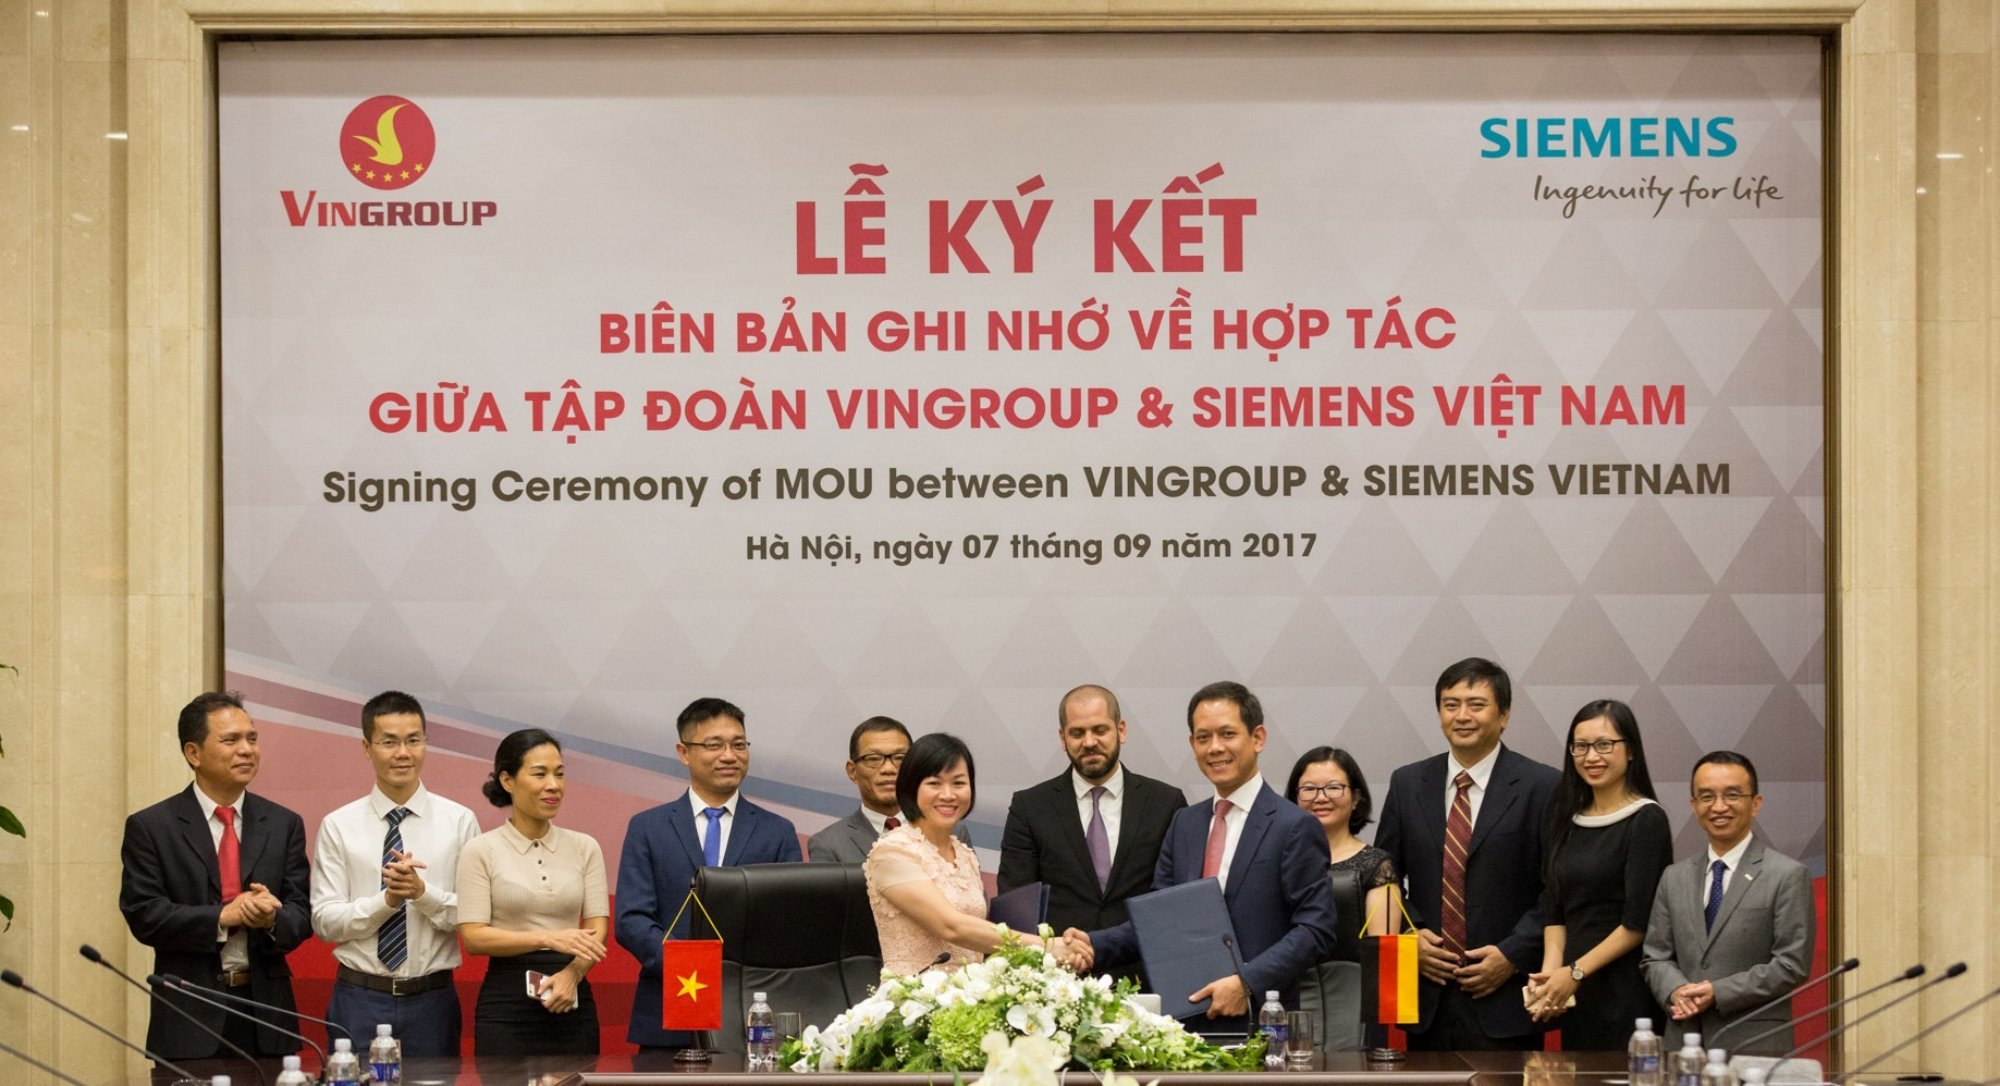 Developing sustainable infrastructure and industries in Vietnam